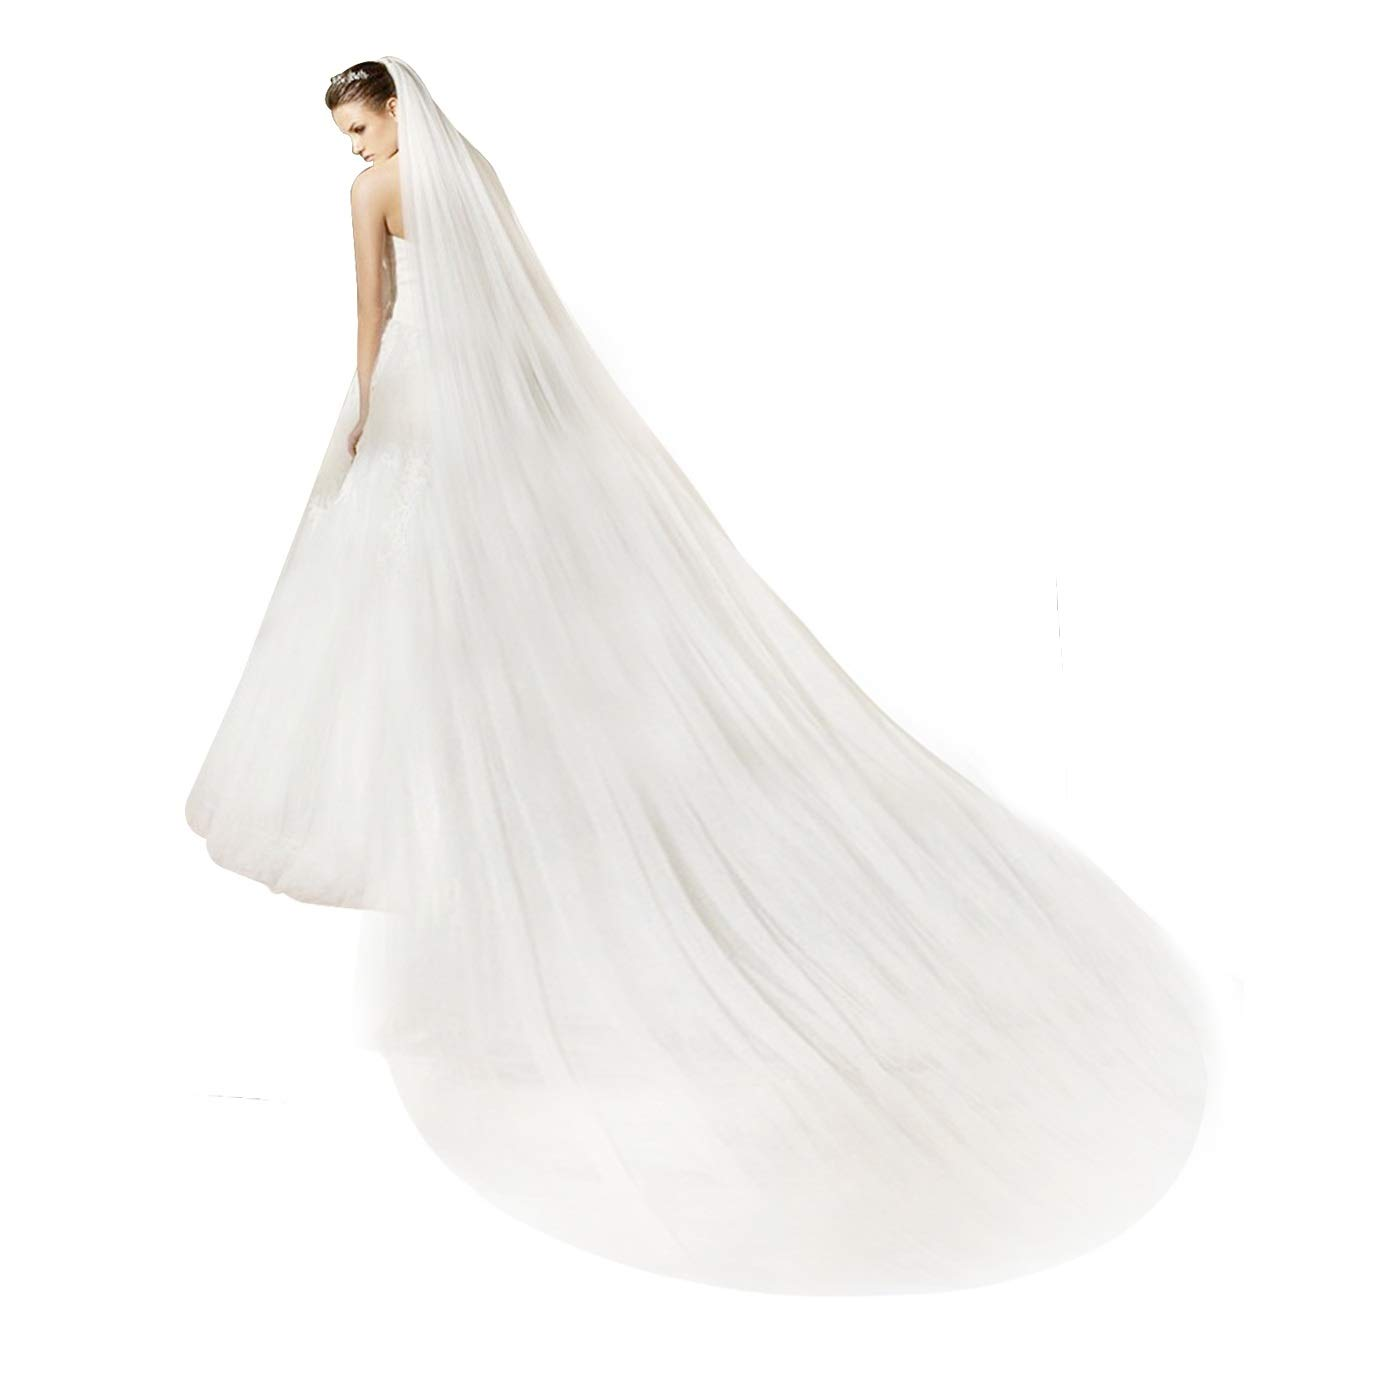 Bridal Wedding Veil 2T Trailing Long Cut Edge with mental Comb Ivory by BEAUTELICATE